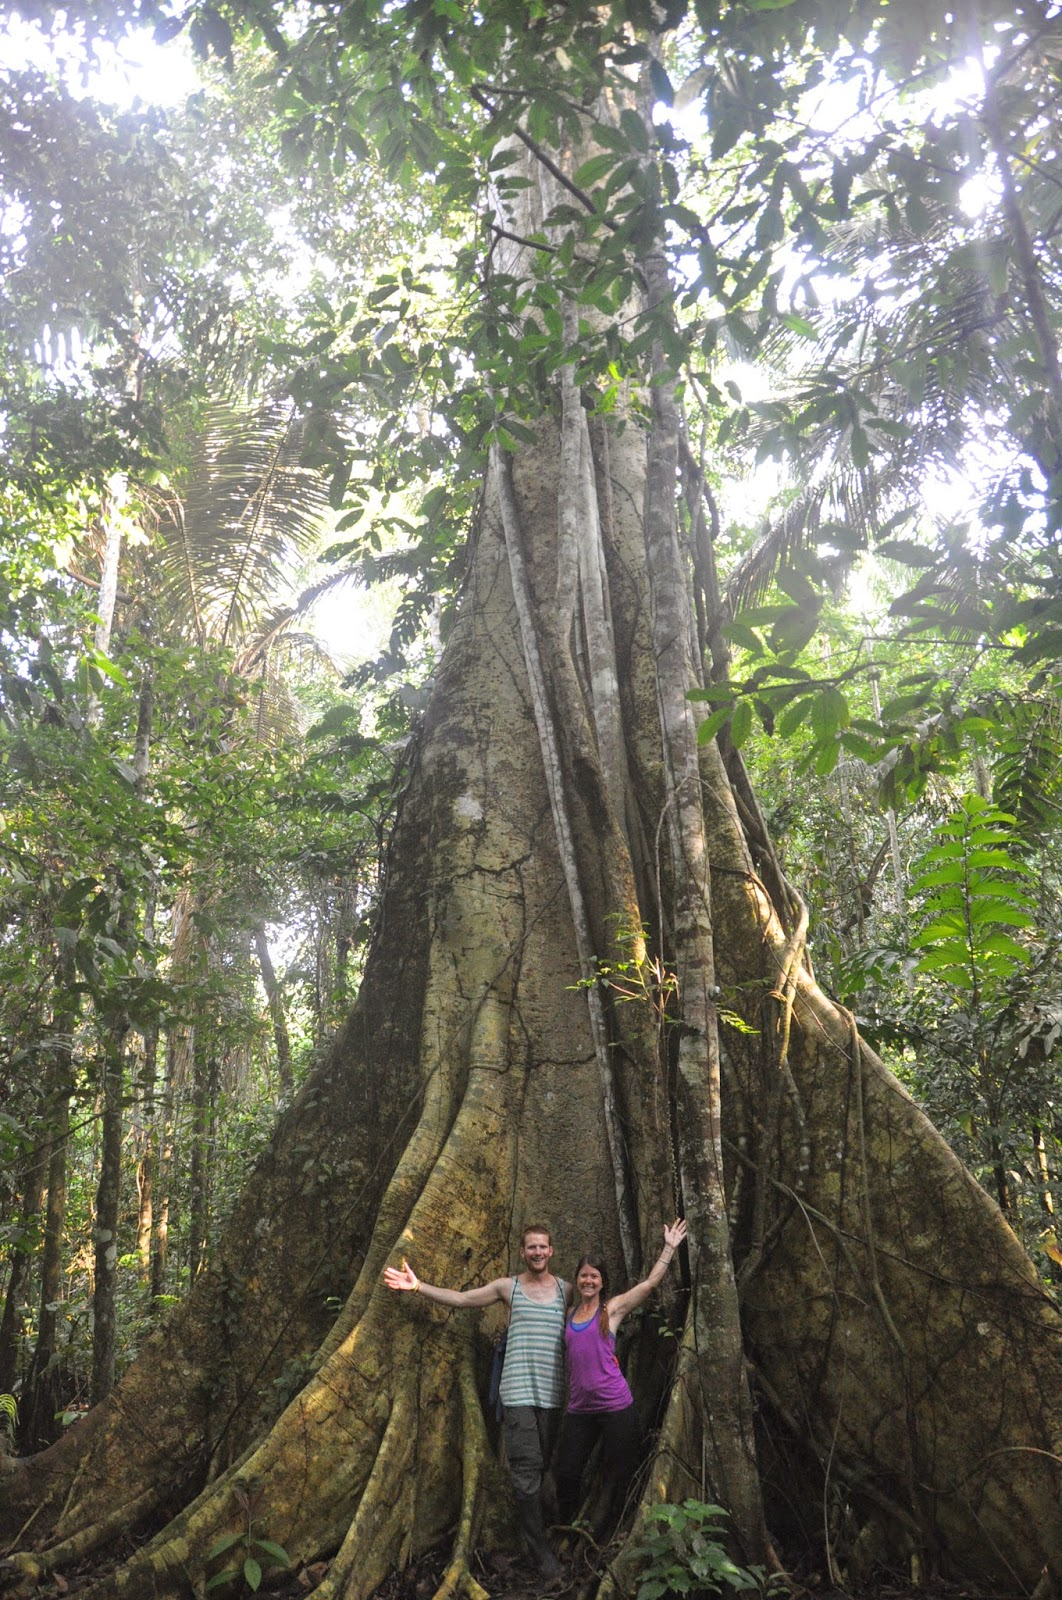 Some of the trees were MASSIVE!